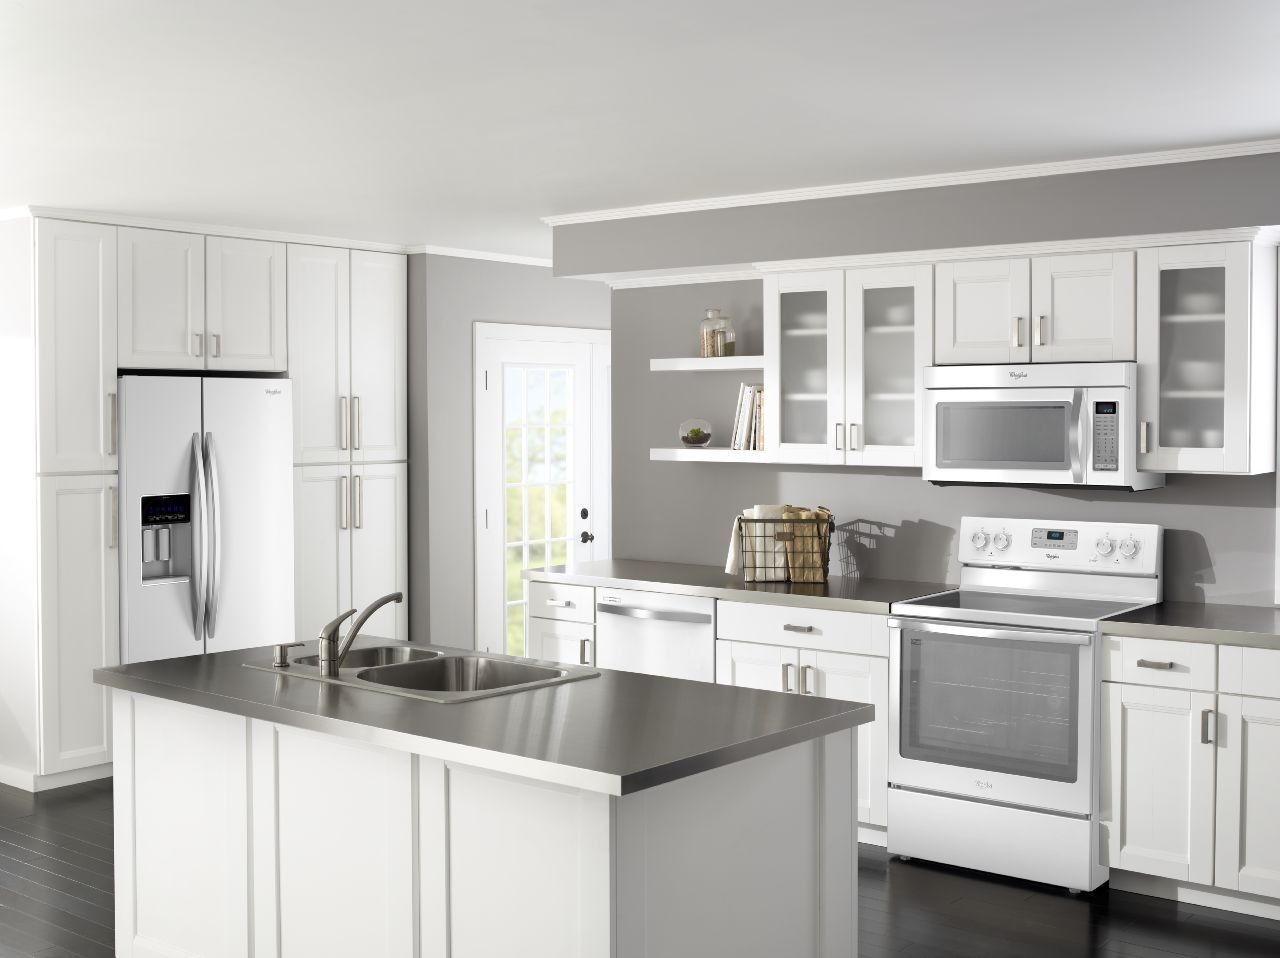 Kitchen Designs With Oak Cabinets And White Appliances Modern Kitchen Appliance With Luxury Interior Nuance With